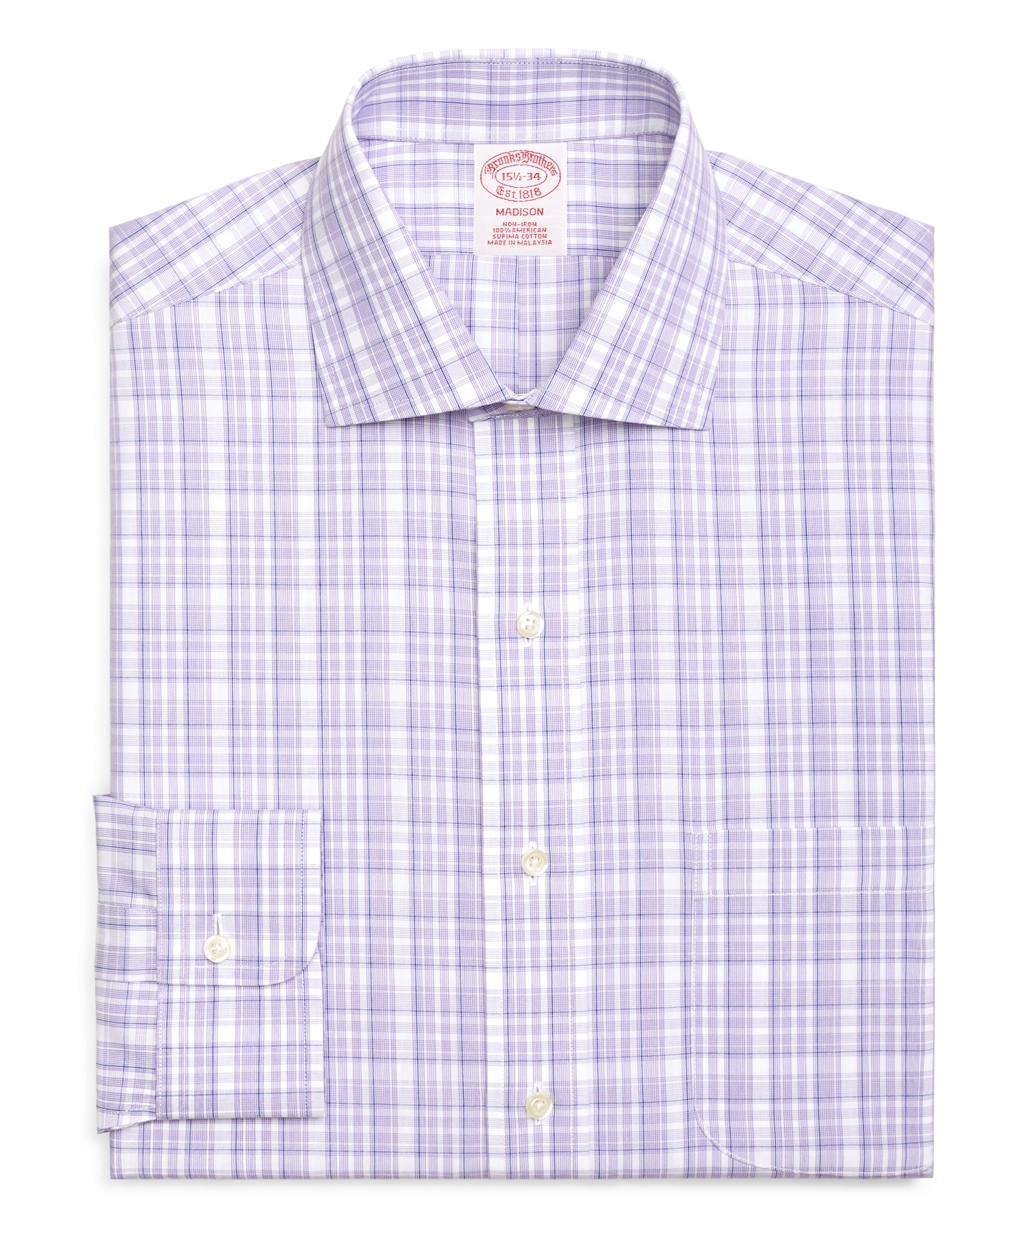 Brooks brothers non iron madison fit sidewheeler check for Brooks brothers dress shirt fit guide